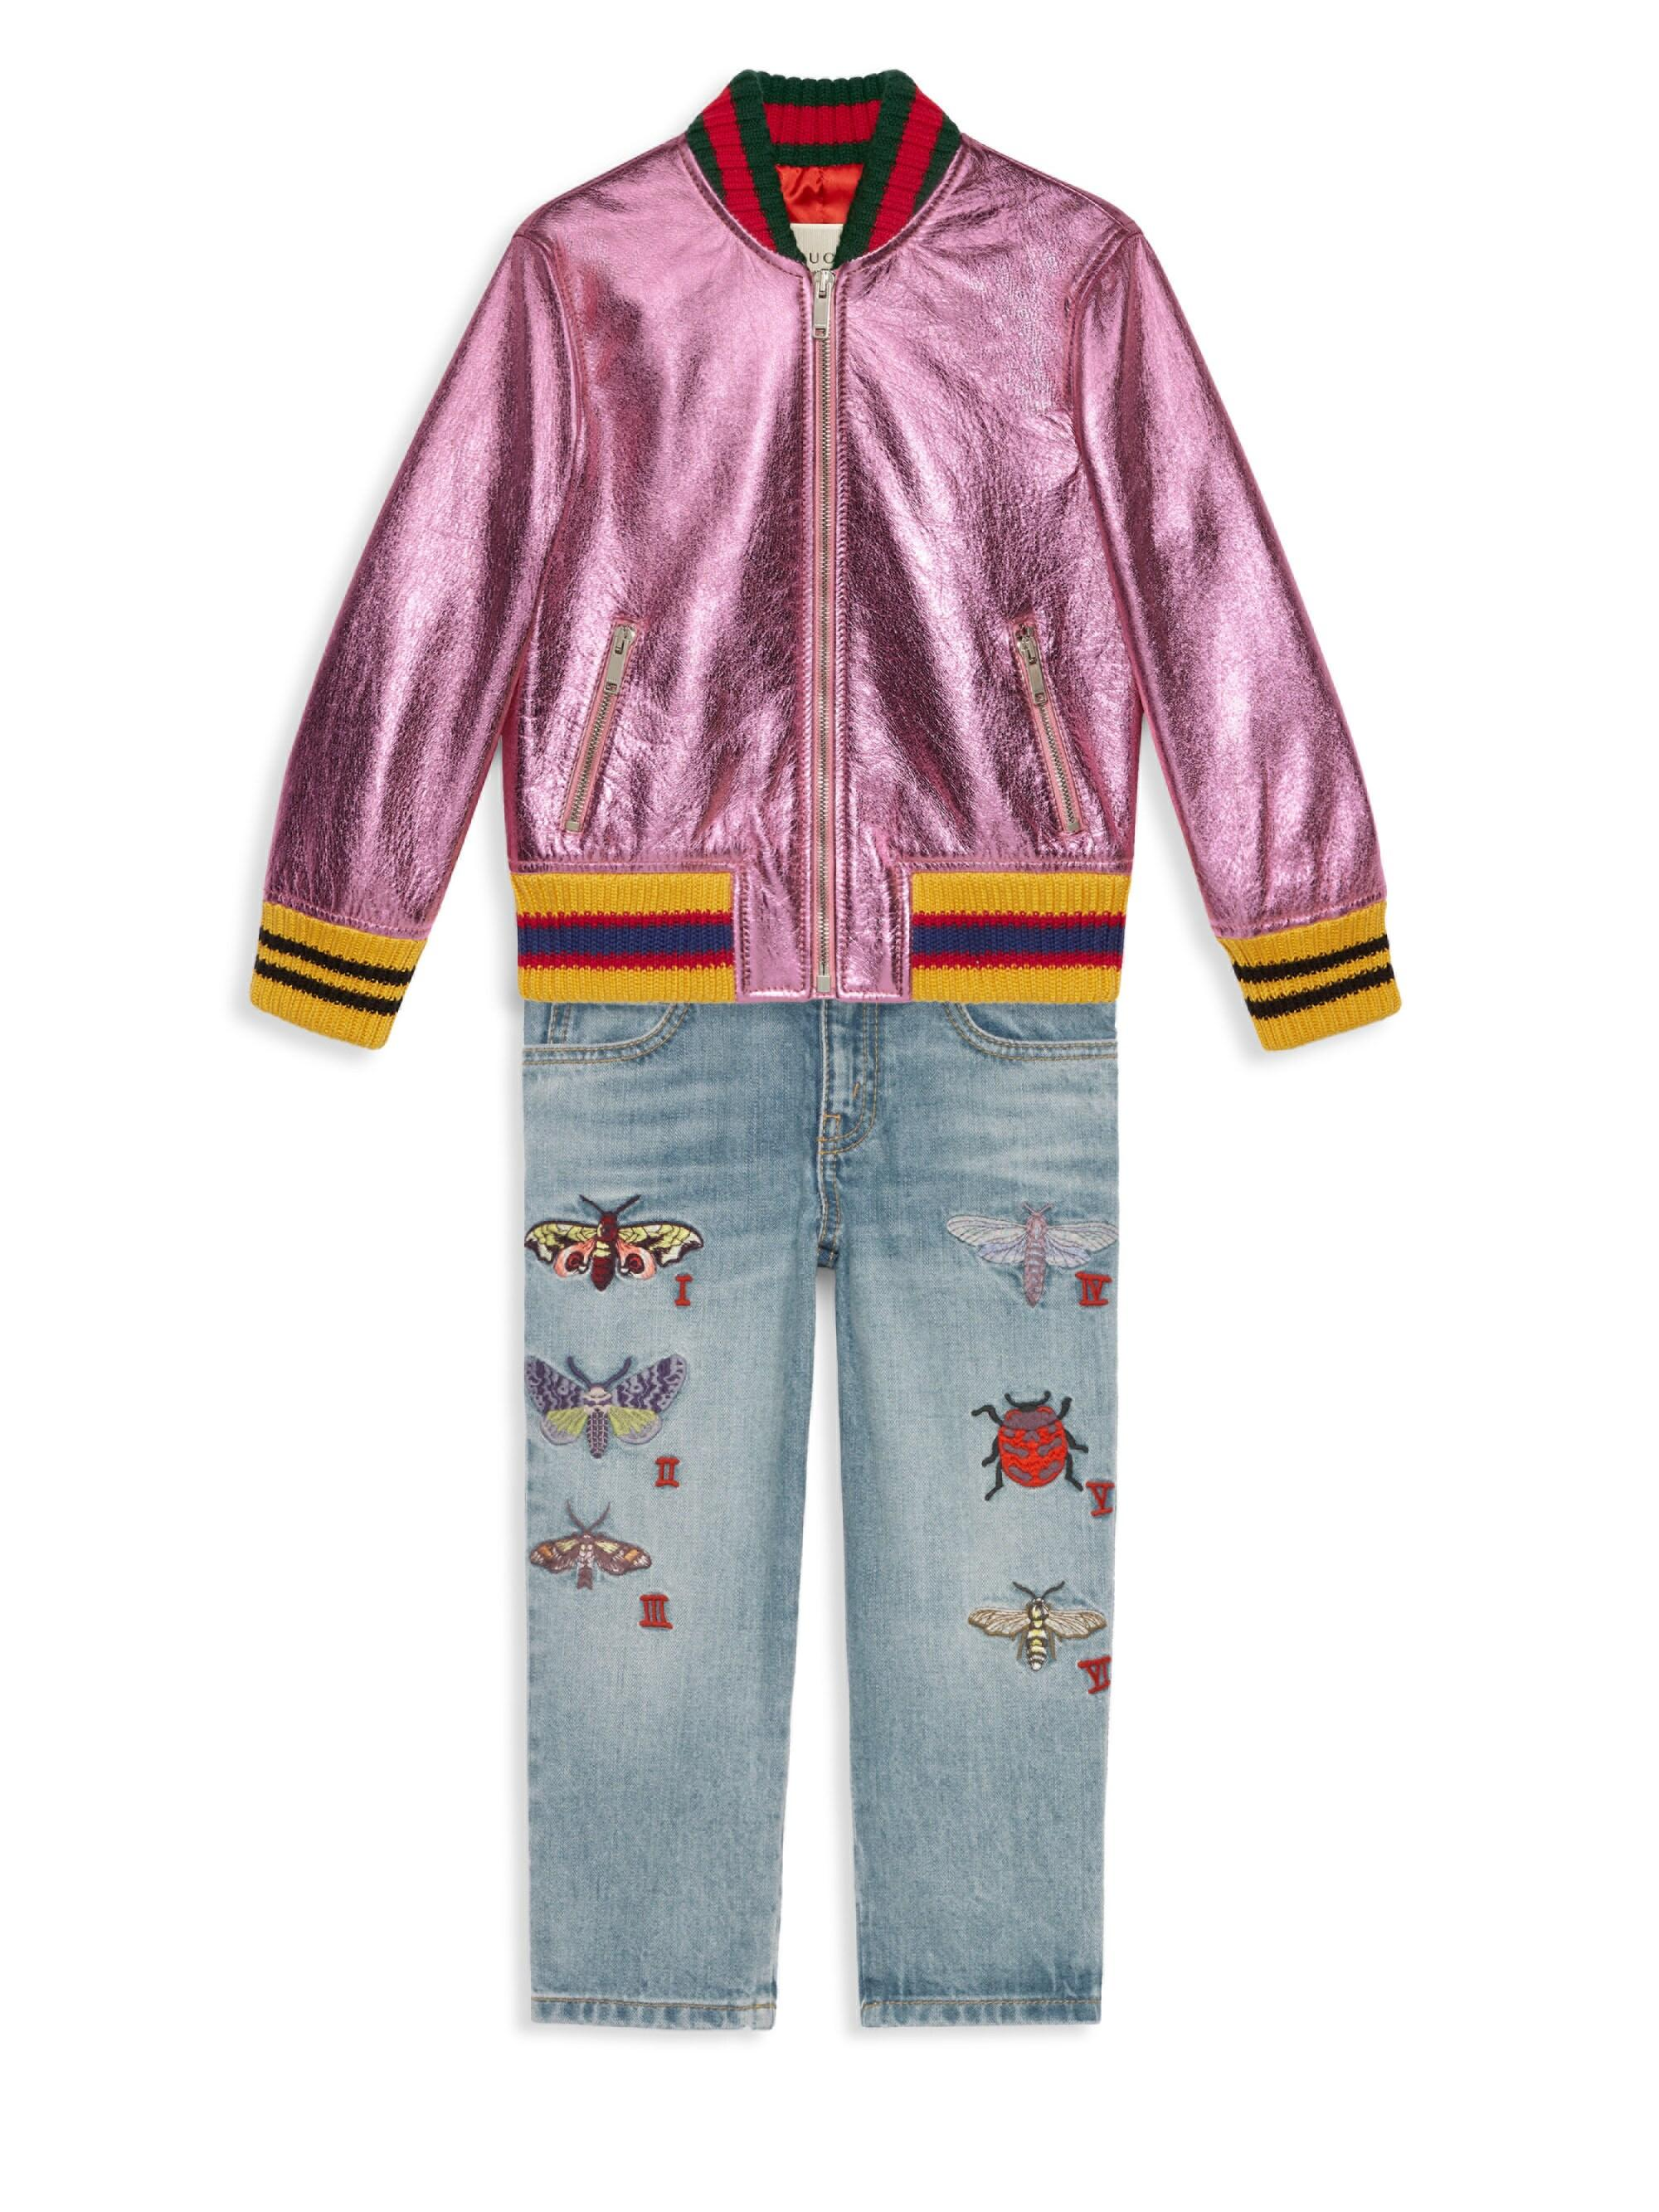 5a1d7e305 Gucci Girl's Metallic Leather Bomber Jacket - Pink in Pink - Lyst